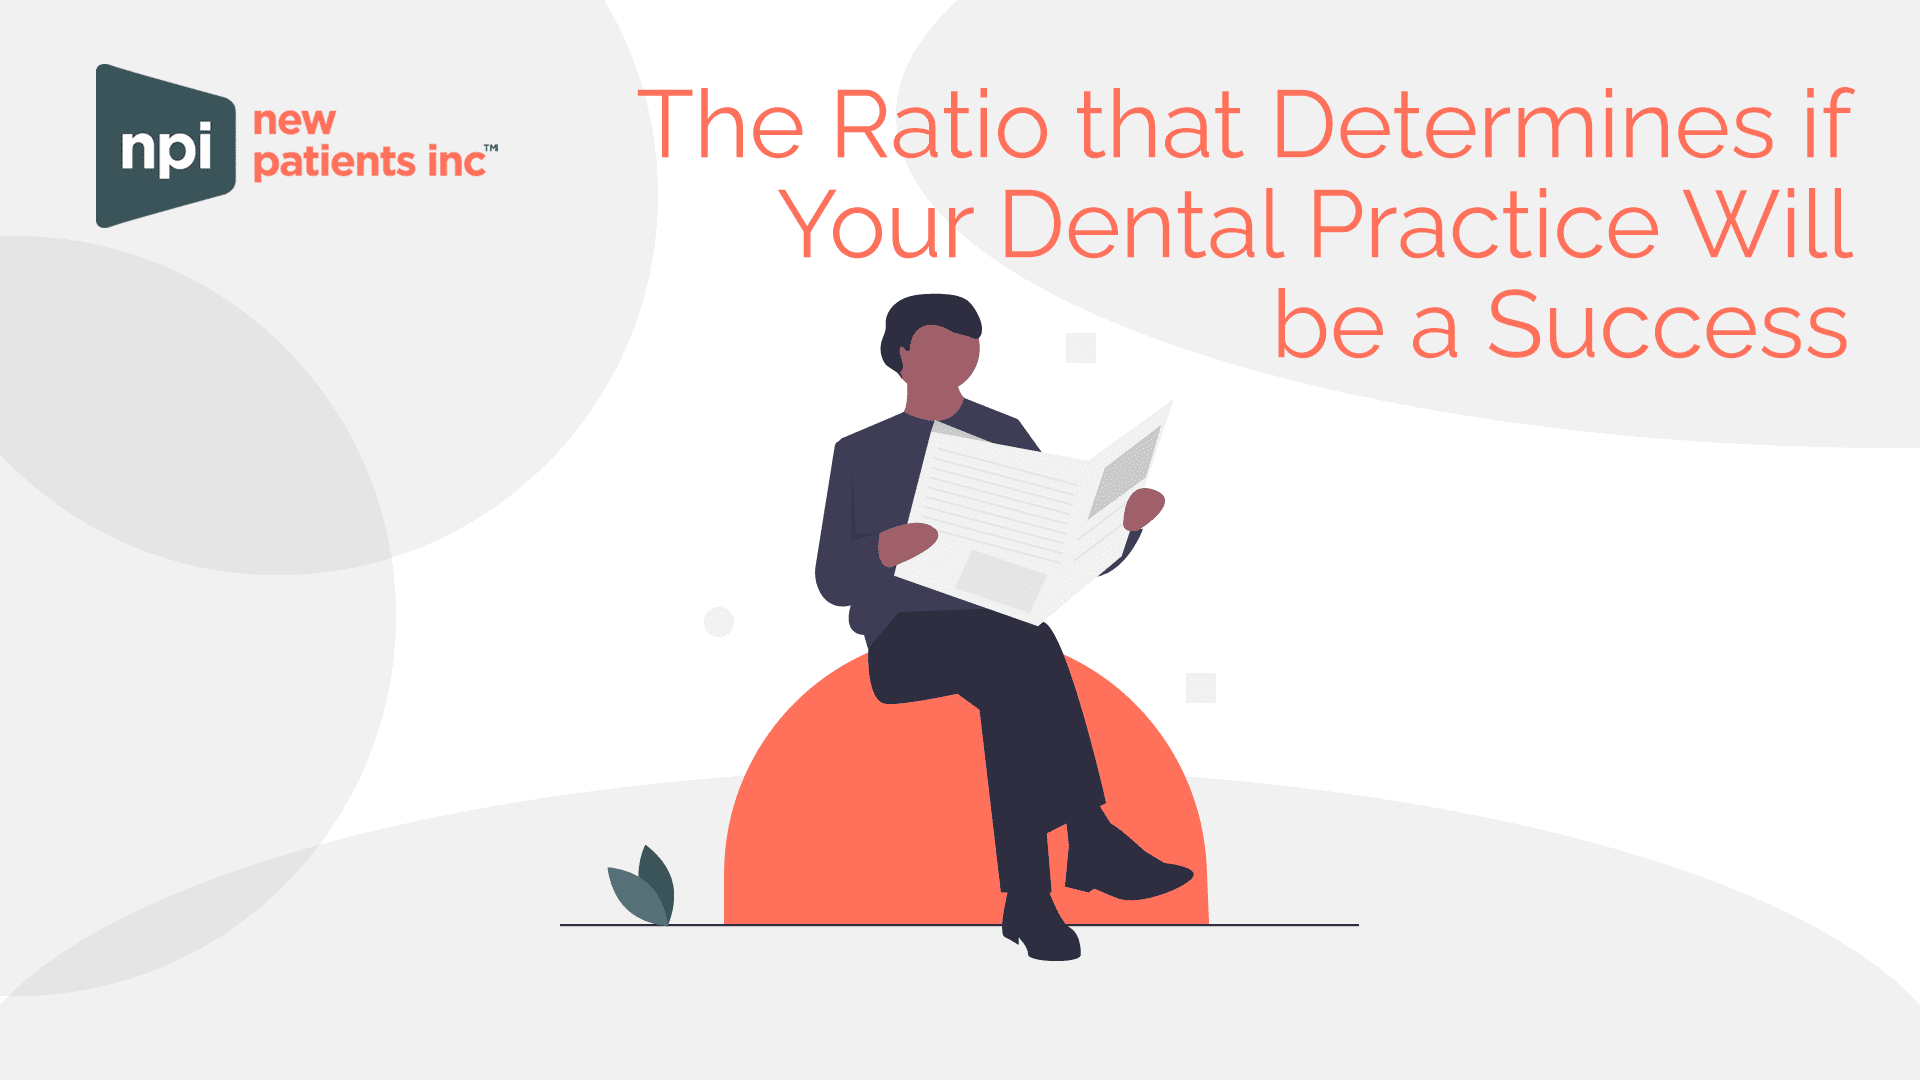 Ratio to Determine Dental Practice Success